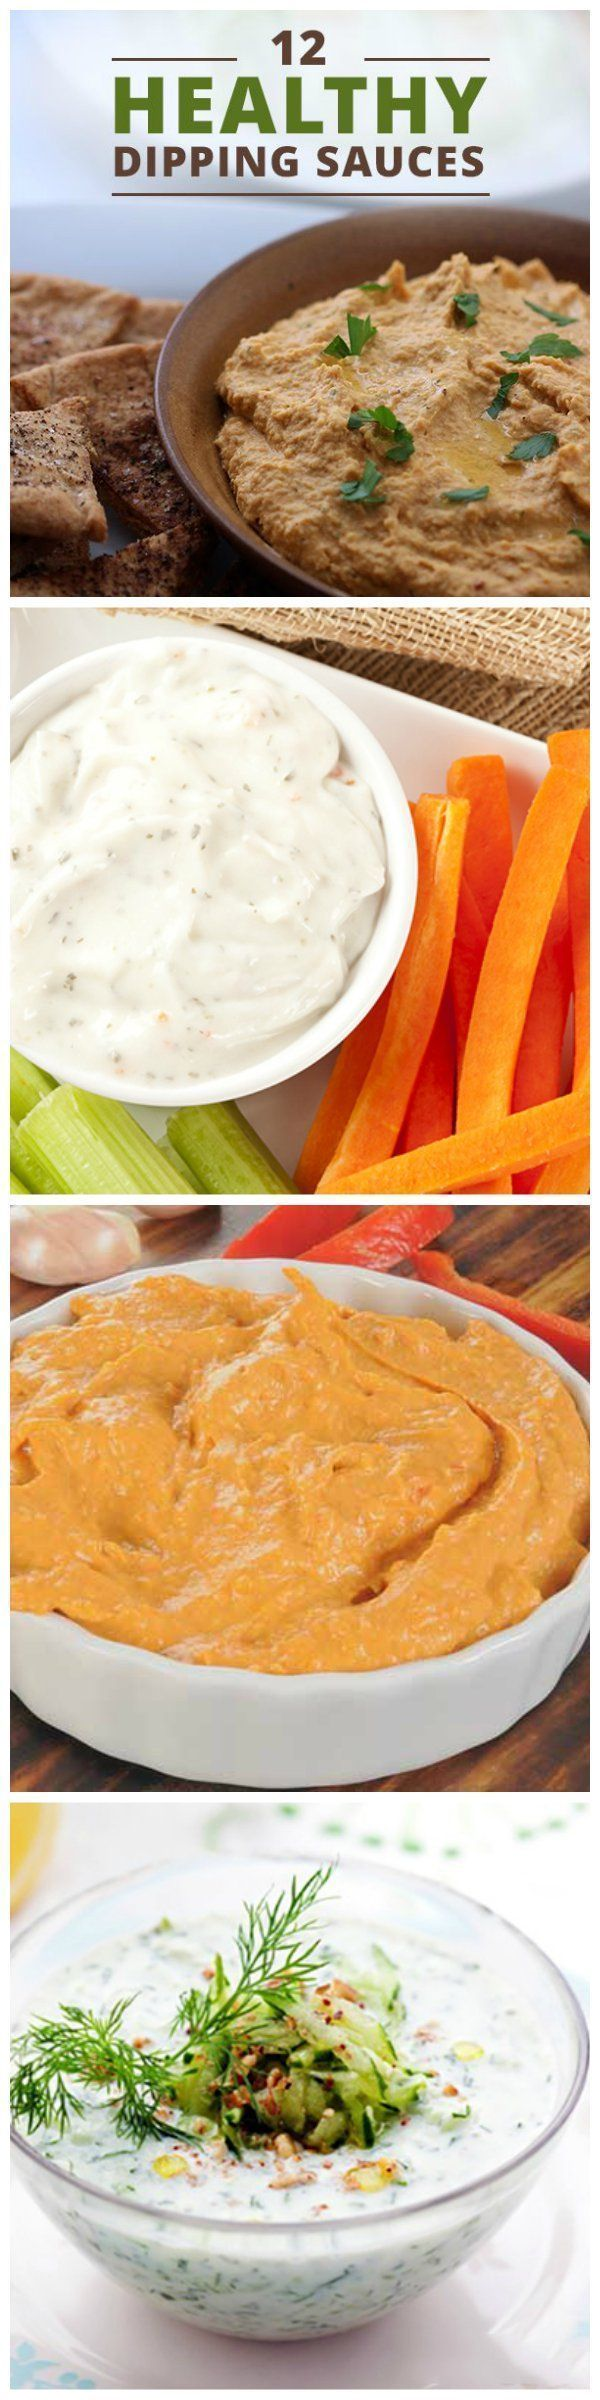 12 Healthy Dipping Sauces for the perfect, guiltless clean eating snack or get togethers! You can also change it up on game day.